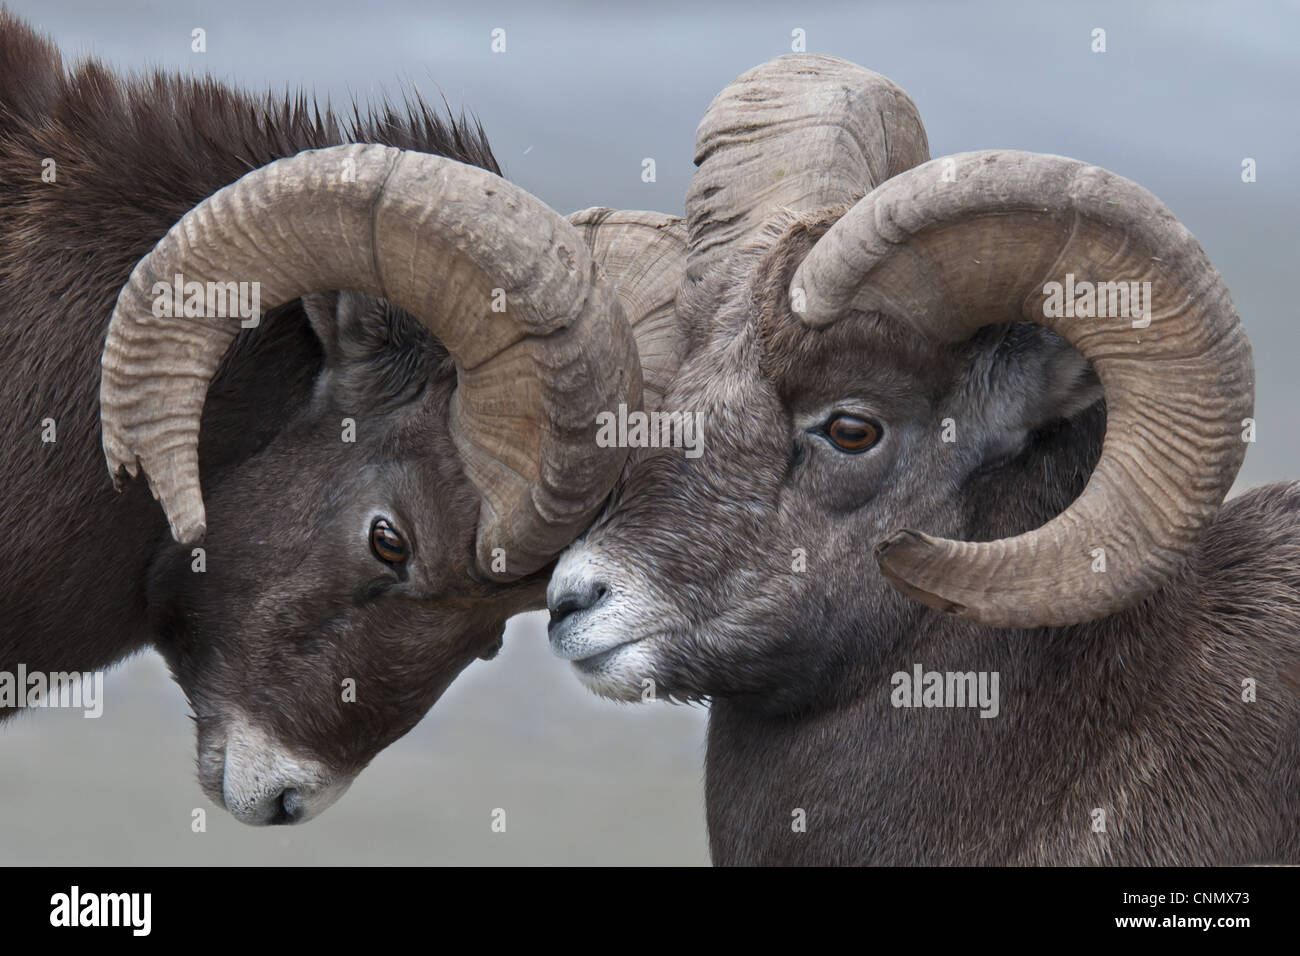 Bighorn Sheep Ovis Canadensis Two Adult Males Butting Horns Close Up Of Heads Jasper NP Alberta Canada October